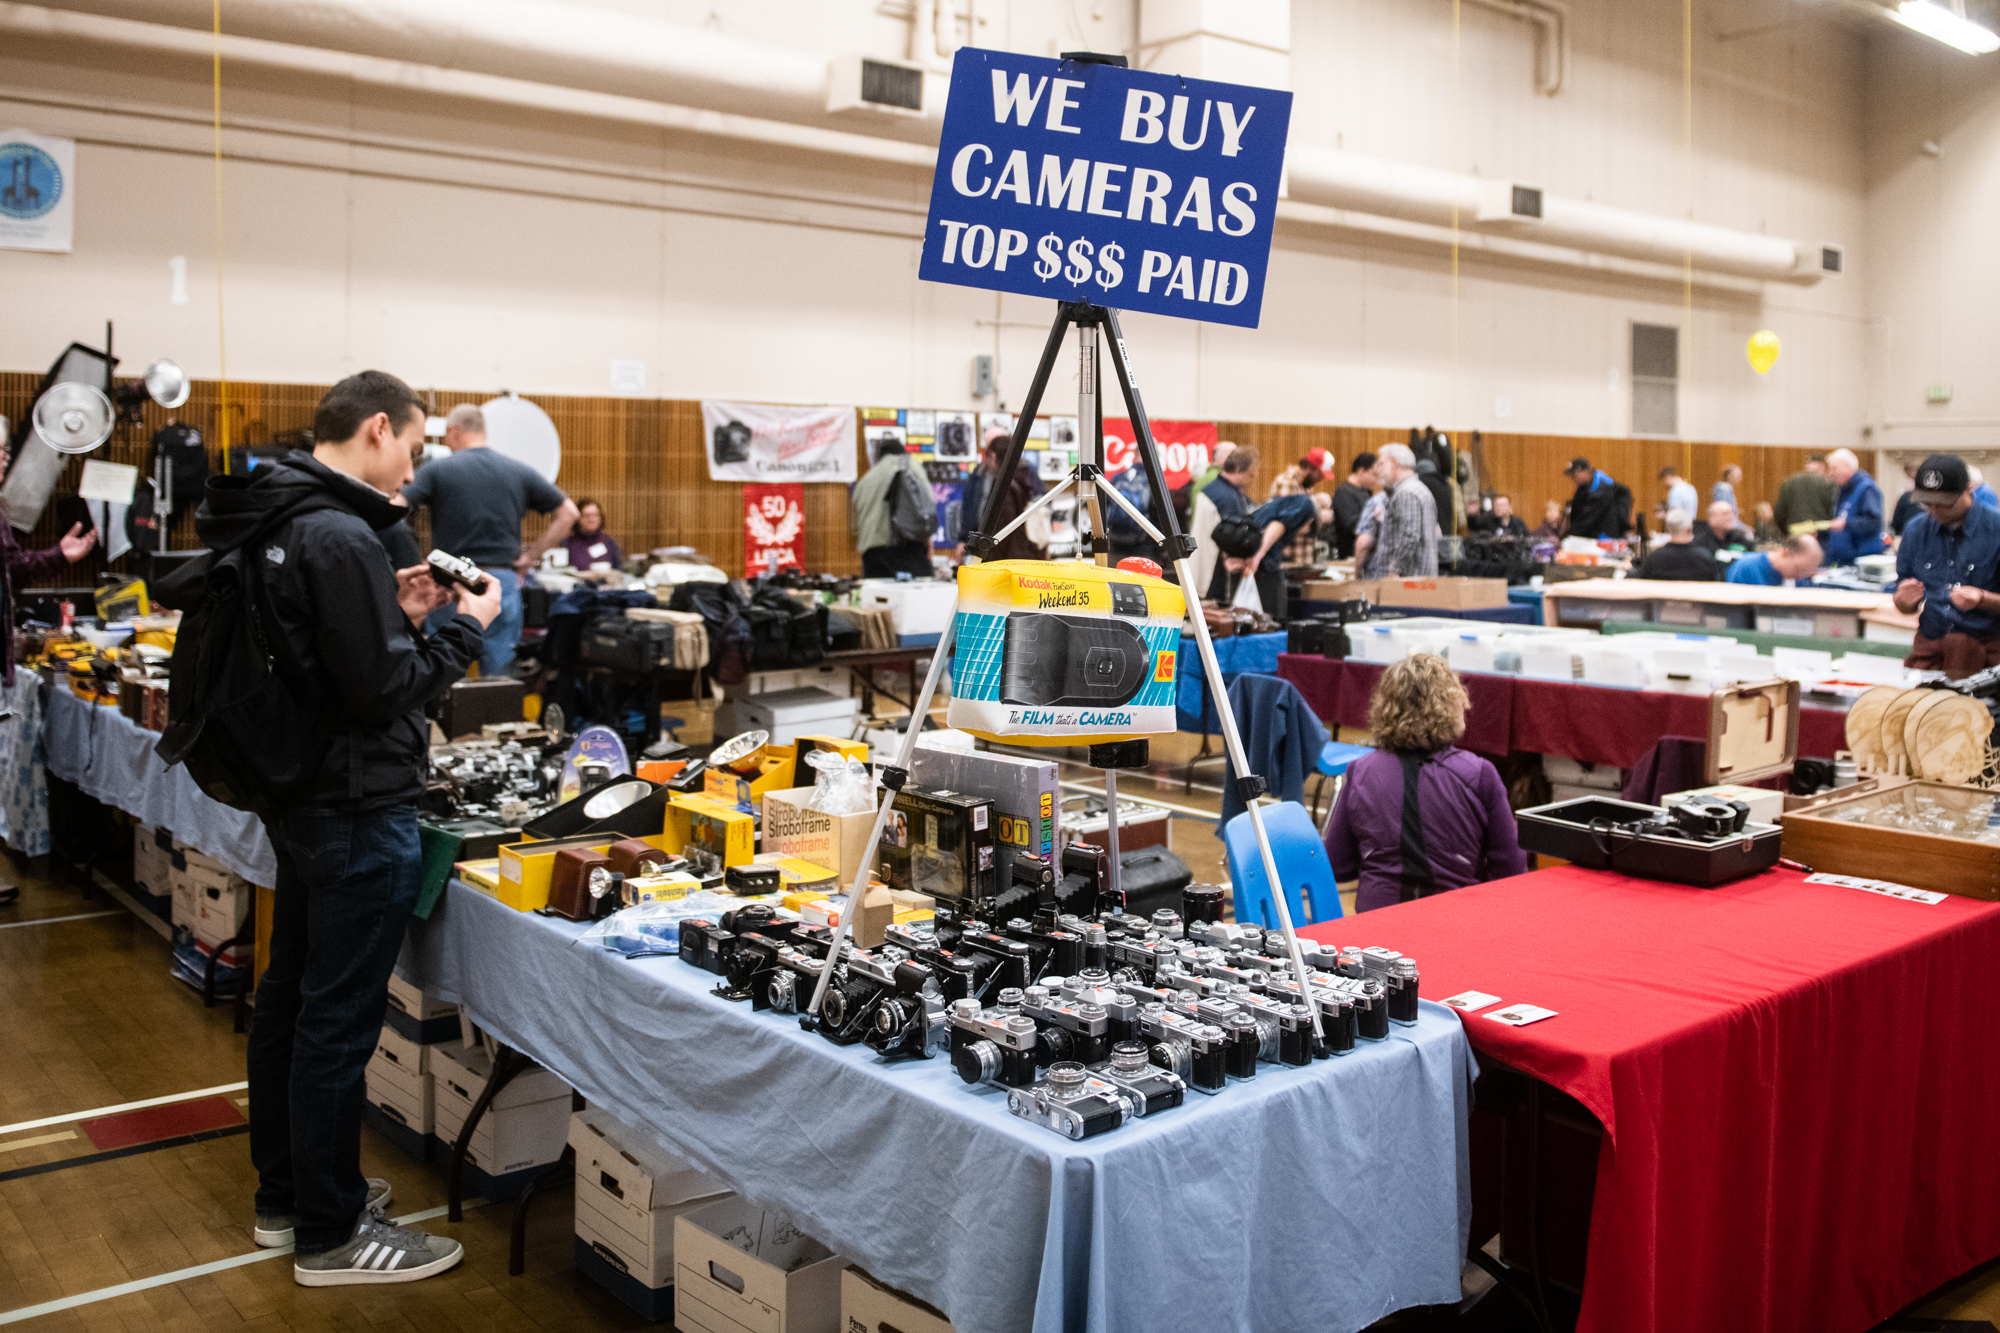 Regardless of your relationship to photography, the annual{&amp;nbsp;}<a  href=&quot;http://www.pspcs.org/our-annual-show&quot; target=&quot;_blank&quot; title=&quot;http://www.pspcs.org/our-annual-show&quot;>Puget Sound Photographic Collectors Society</a>'s camera show is truly a sight to behold. The largest camera swap in the western United States,{&amp;nbsp;}2019 marked the 39th annual show at Kent Commons. We dipped in for early entry to check out the stands before doors opened to the public at 10am. From Kodak paraphernalia to Fujifilm woefully past its expiration date (who doesn't love a good gamble?); there was lots to feast our eyes on. Click on to see cameras, doo-dads, and photographic accessories of all shapes, colors and sizes. (Image: Chona Kasinger / Seattle Refined)